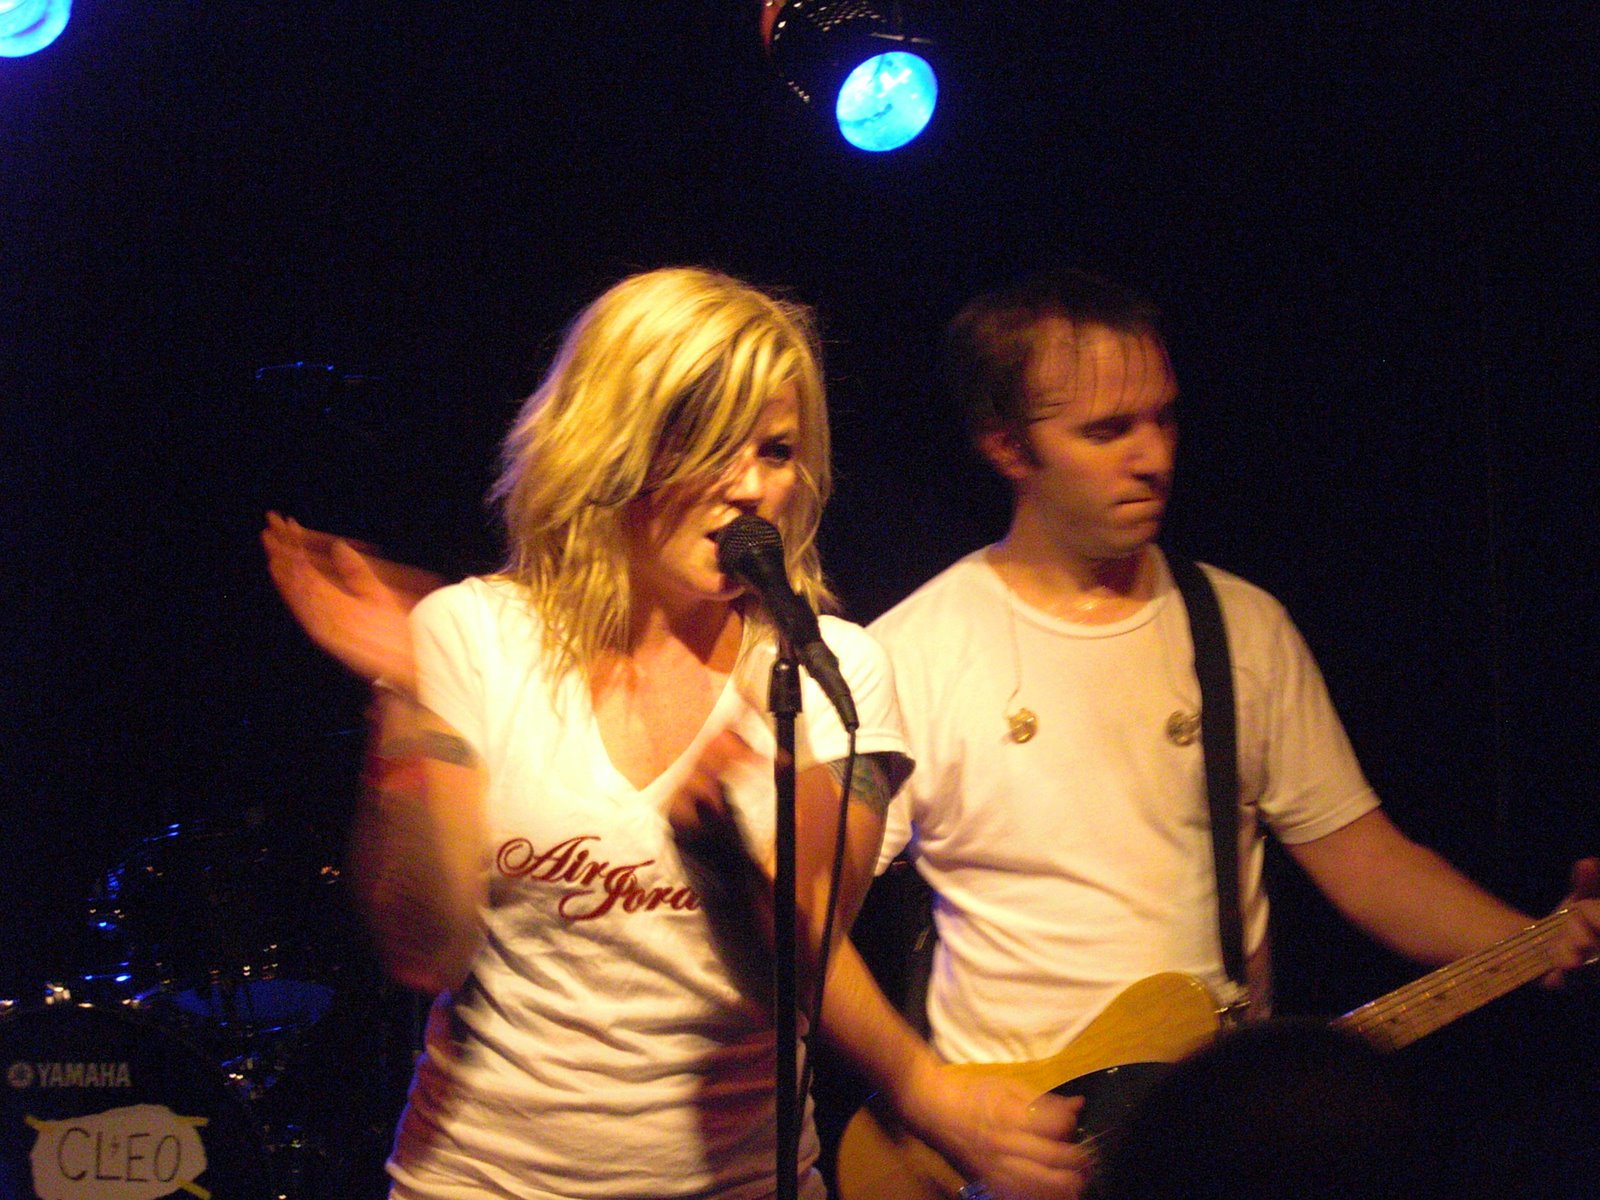 Letters to Cleo 12-8-08 no. 3 by blathering-idiot on DeviantArt